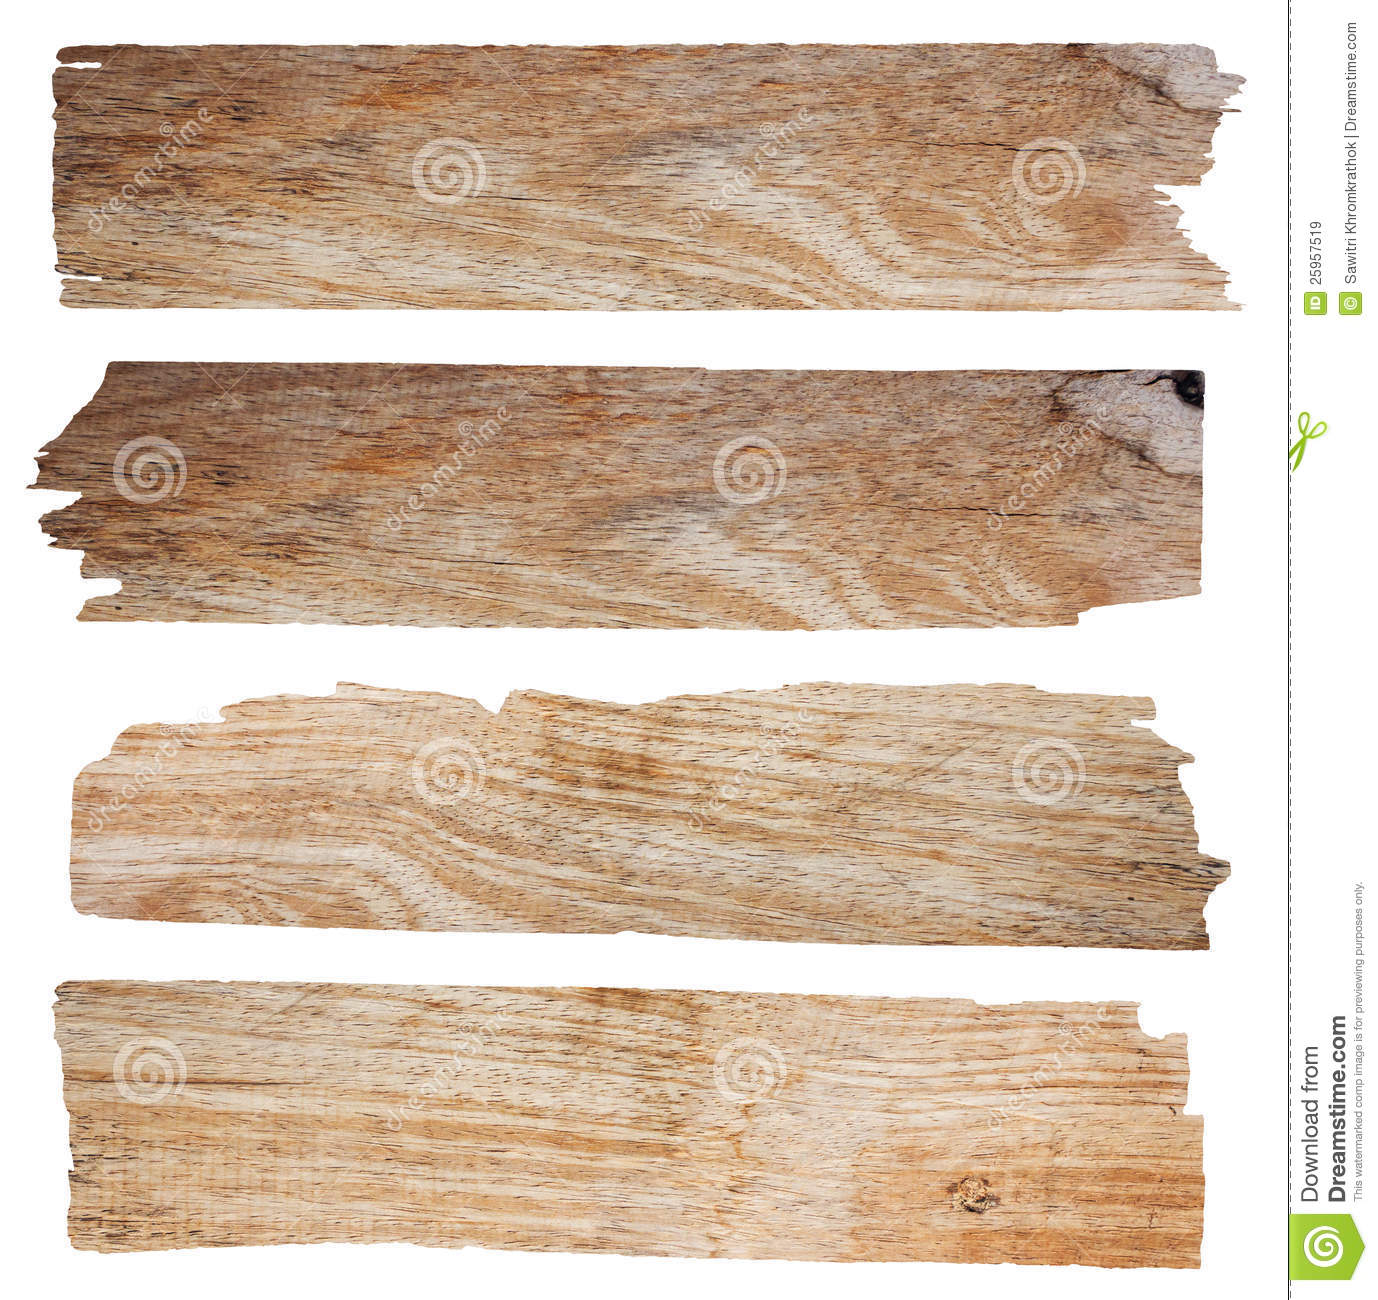 Wood Plank Royalty Free Stock Images - Image: 25957519